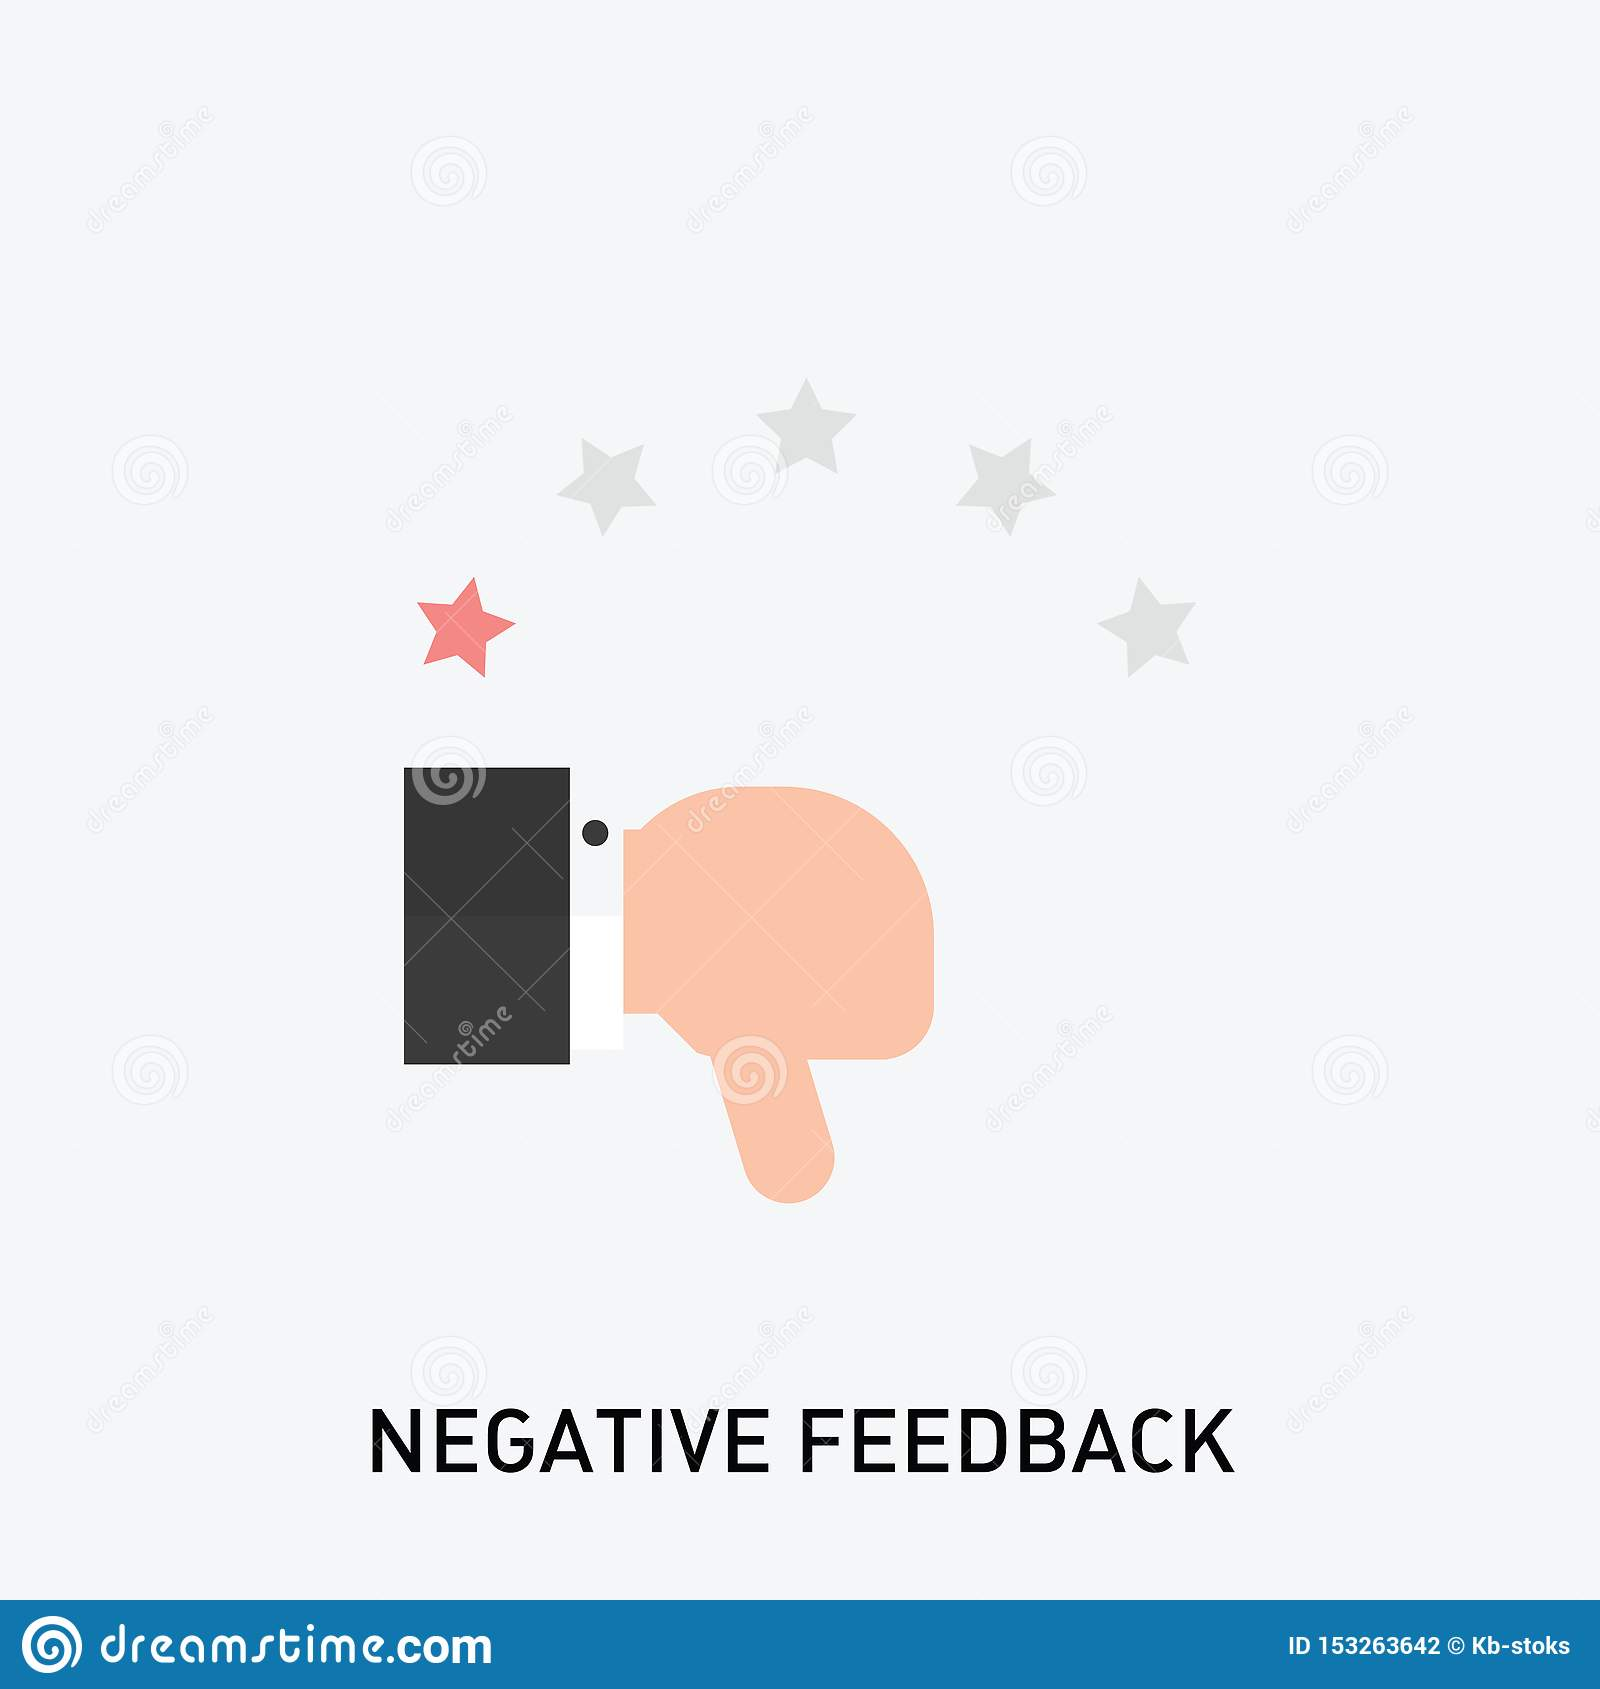 Negative feedback icon. Bad review rating icon.